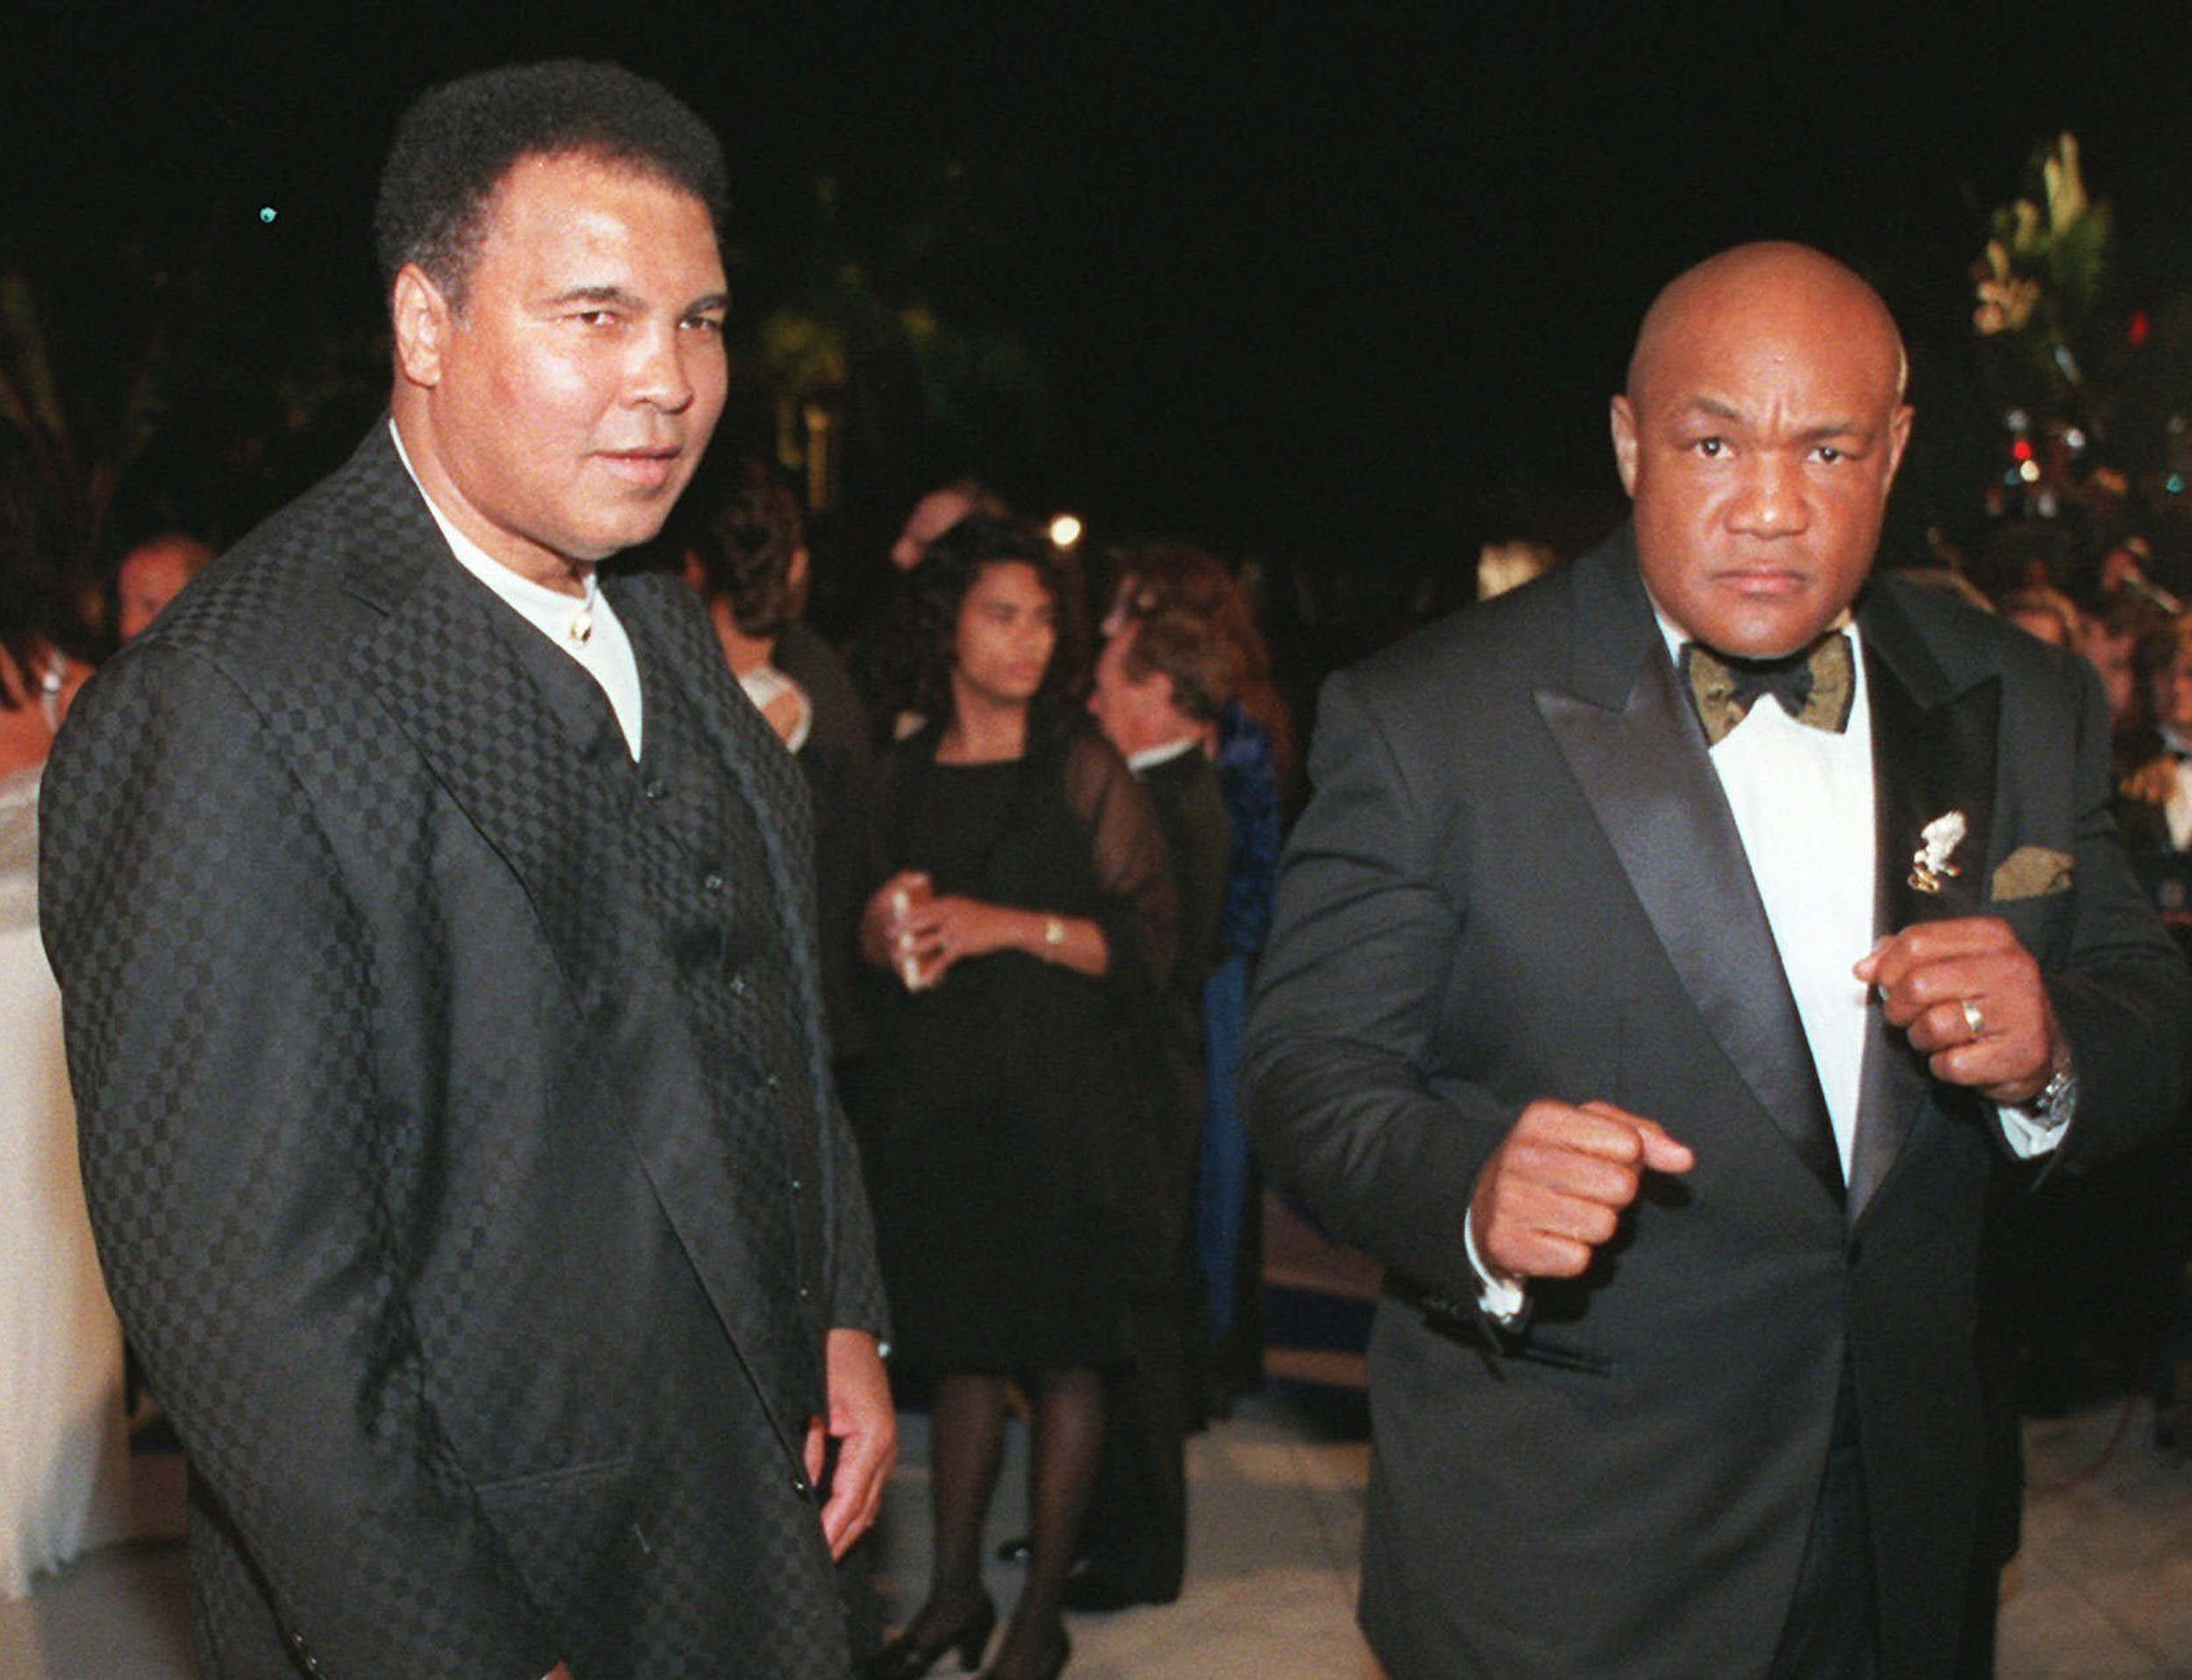 Boxing greats Muhammad Ali, left, and George Foreman arrive at a Vanity Fair Oscar party in West Hollywood, California, in 1997.